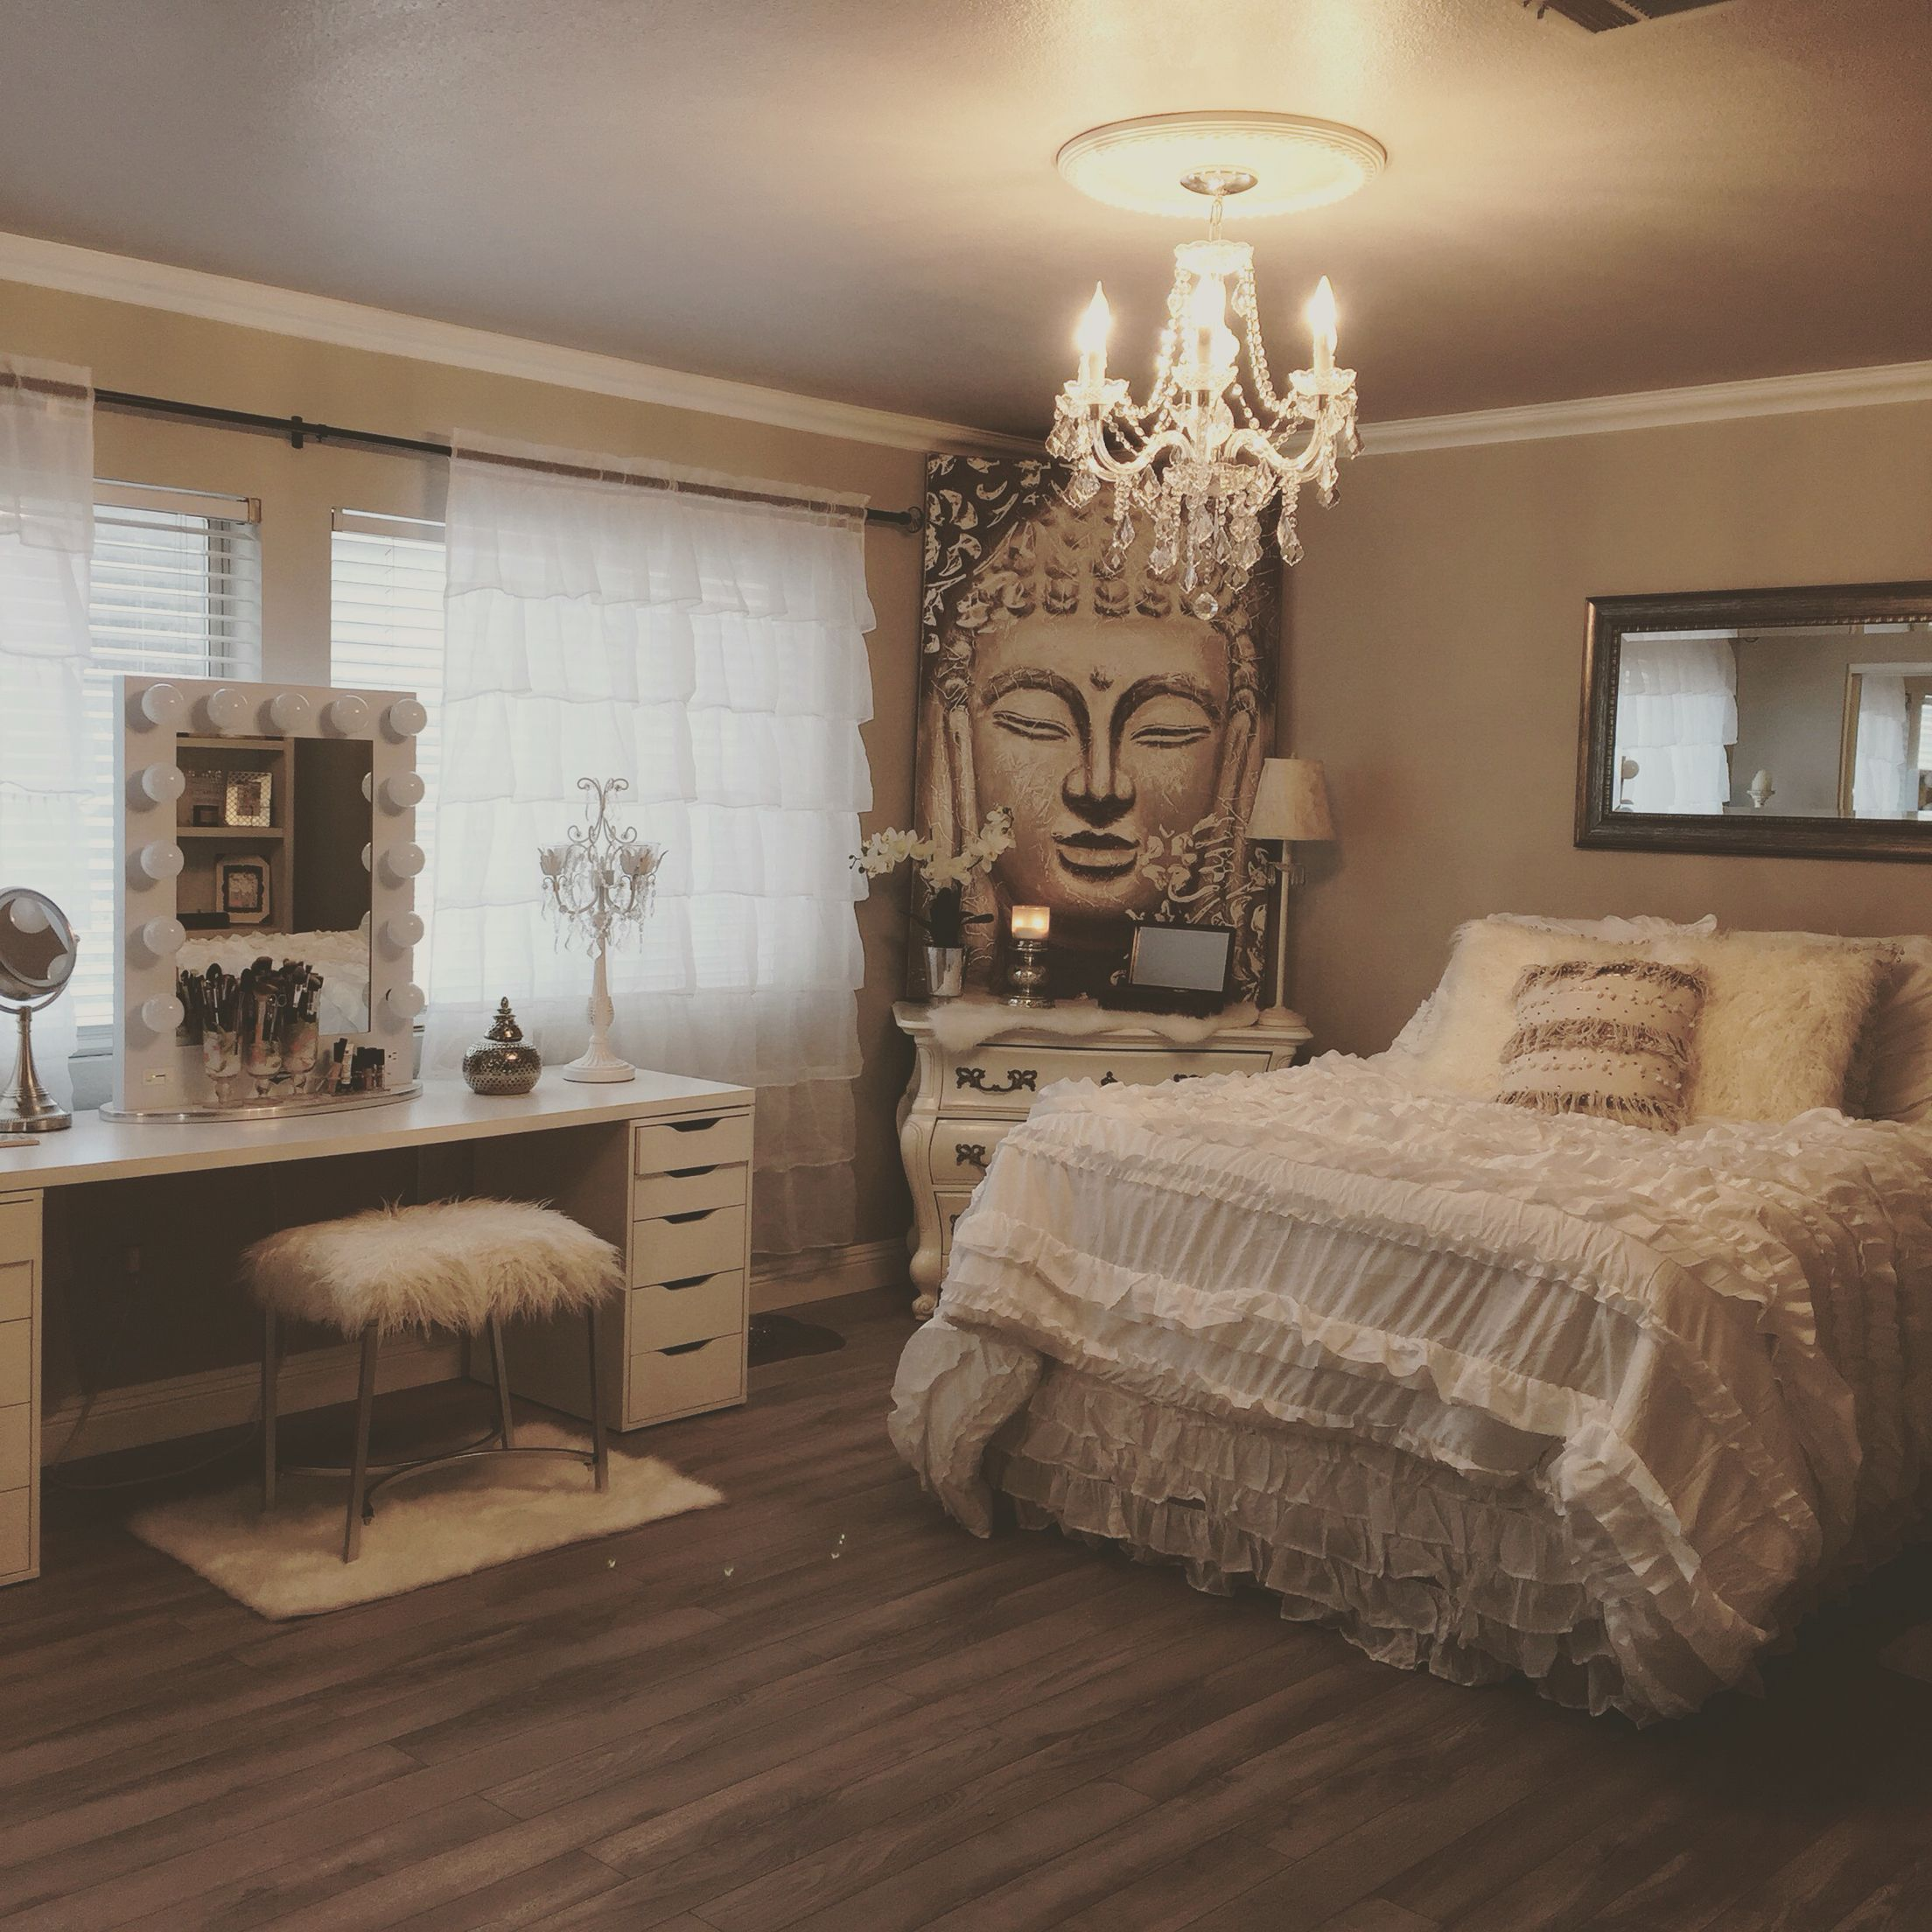 Shabby chic meets zen glam my new bedroom pinterest shabby met and bedrooms - Bedrooms designs ...